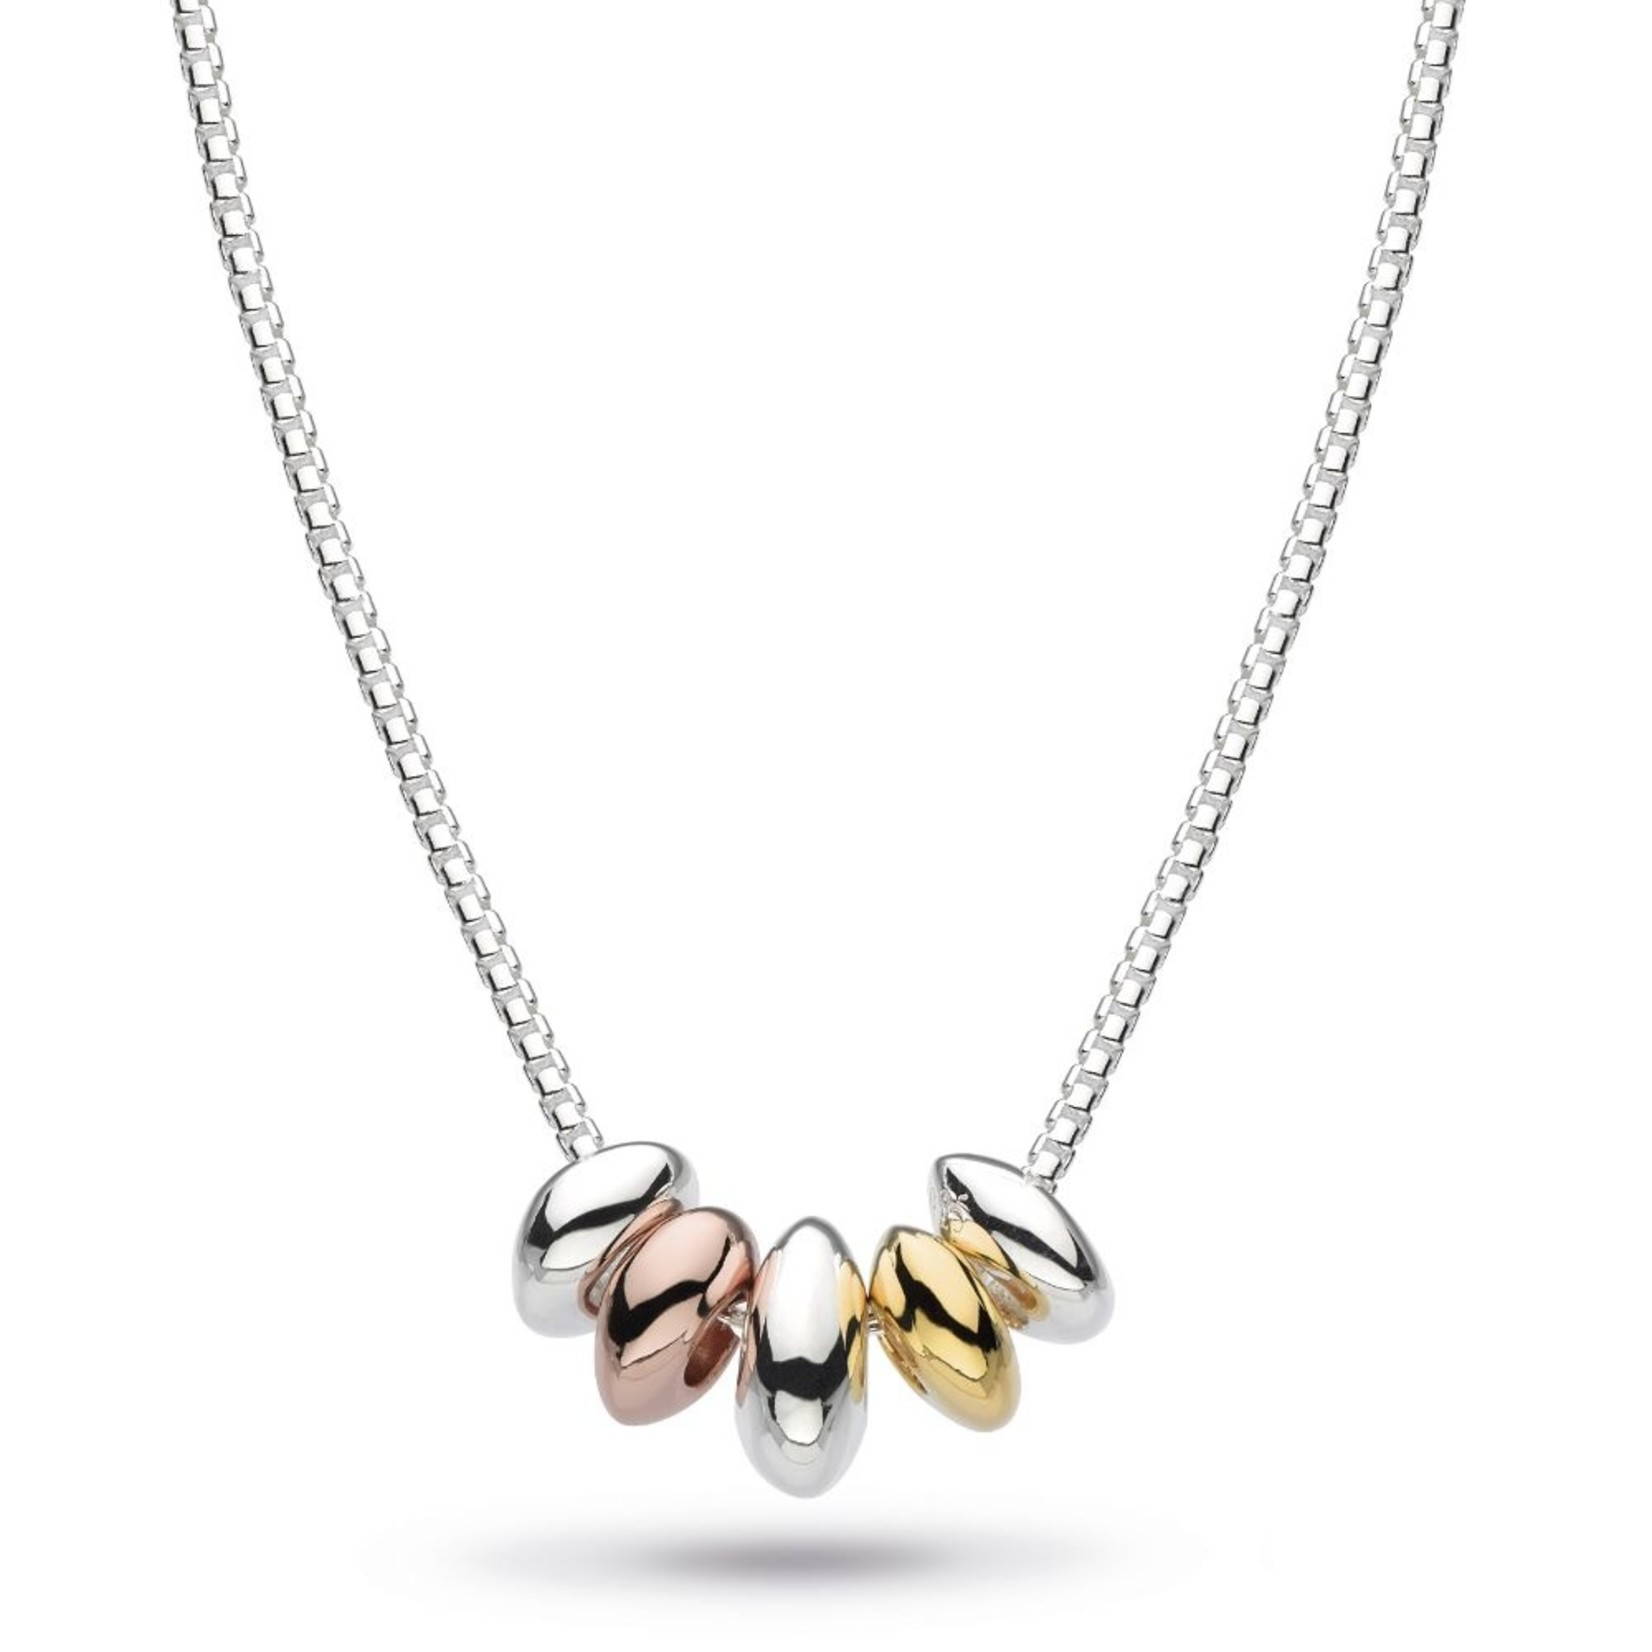 Coast Tumble Quinate Gold, Rose Gold Plate Necklace